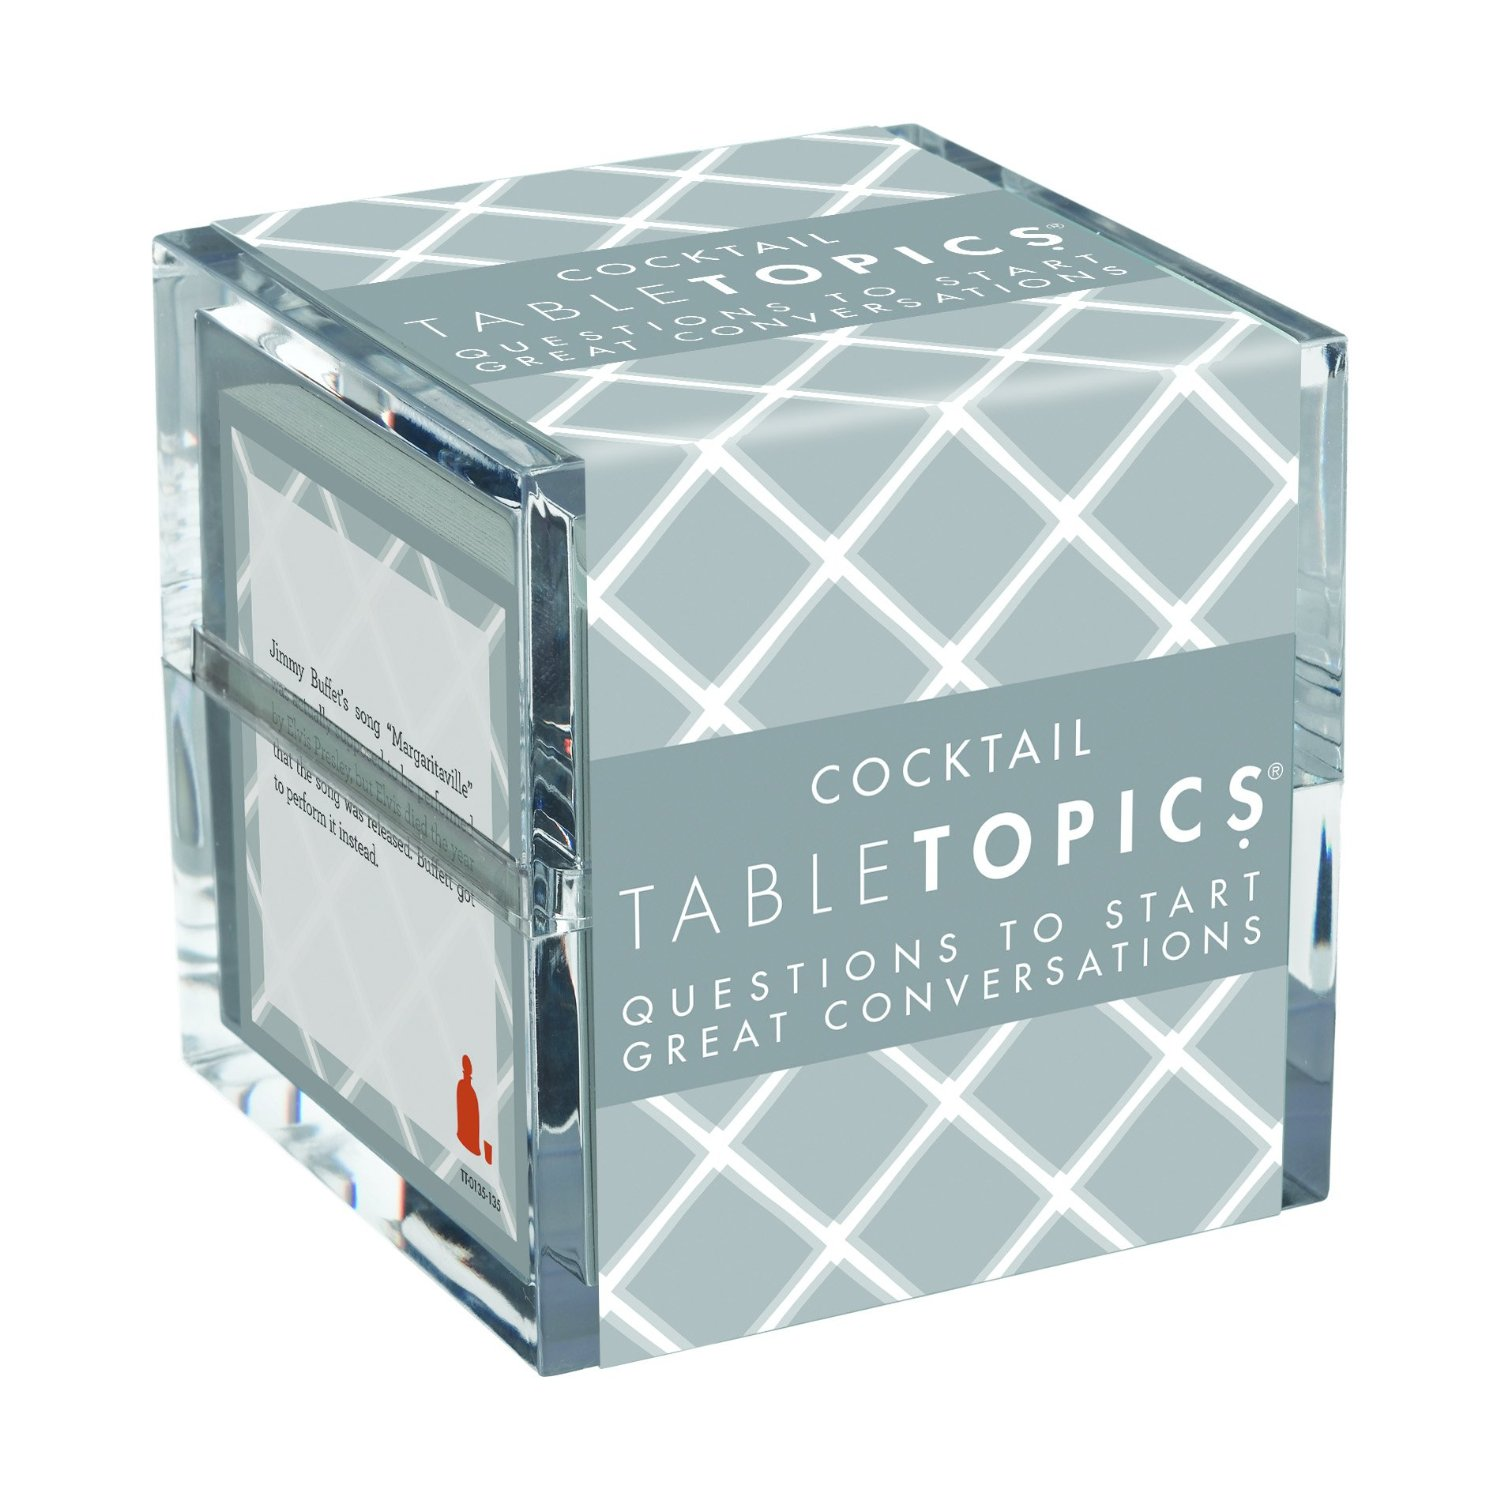 tabletopics-cocktail-game